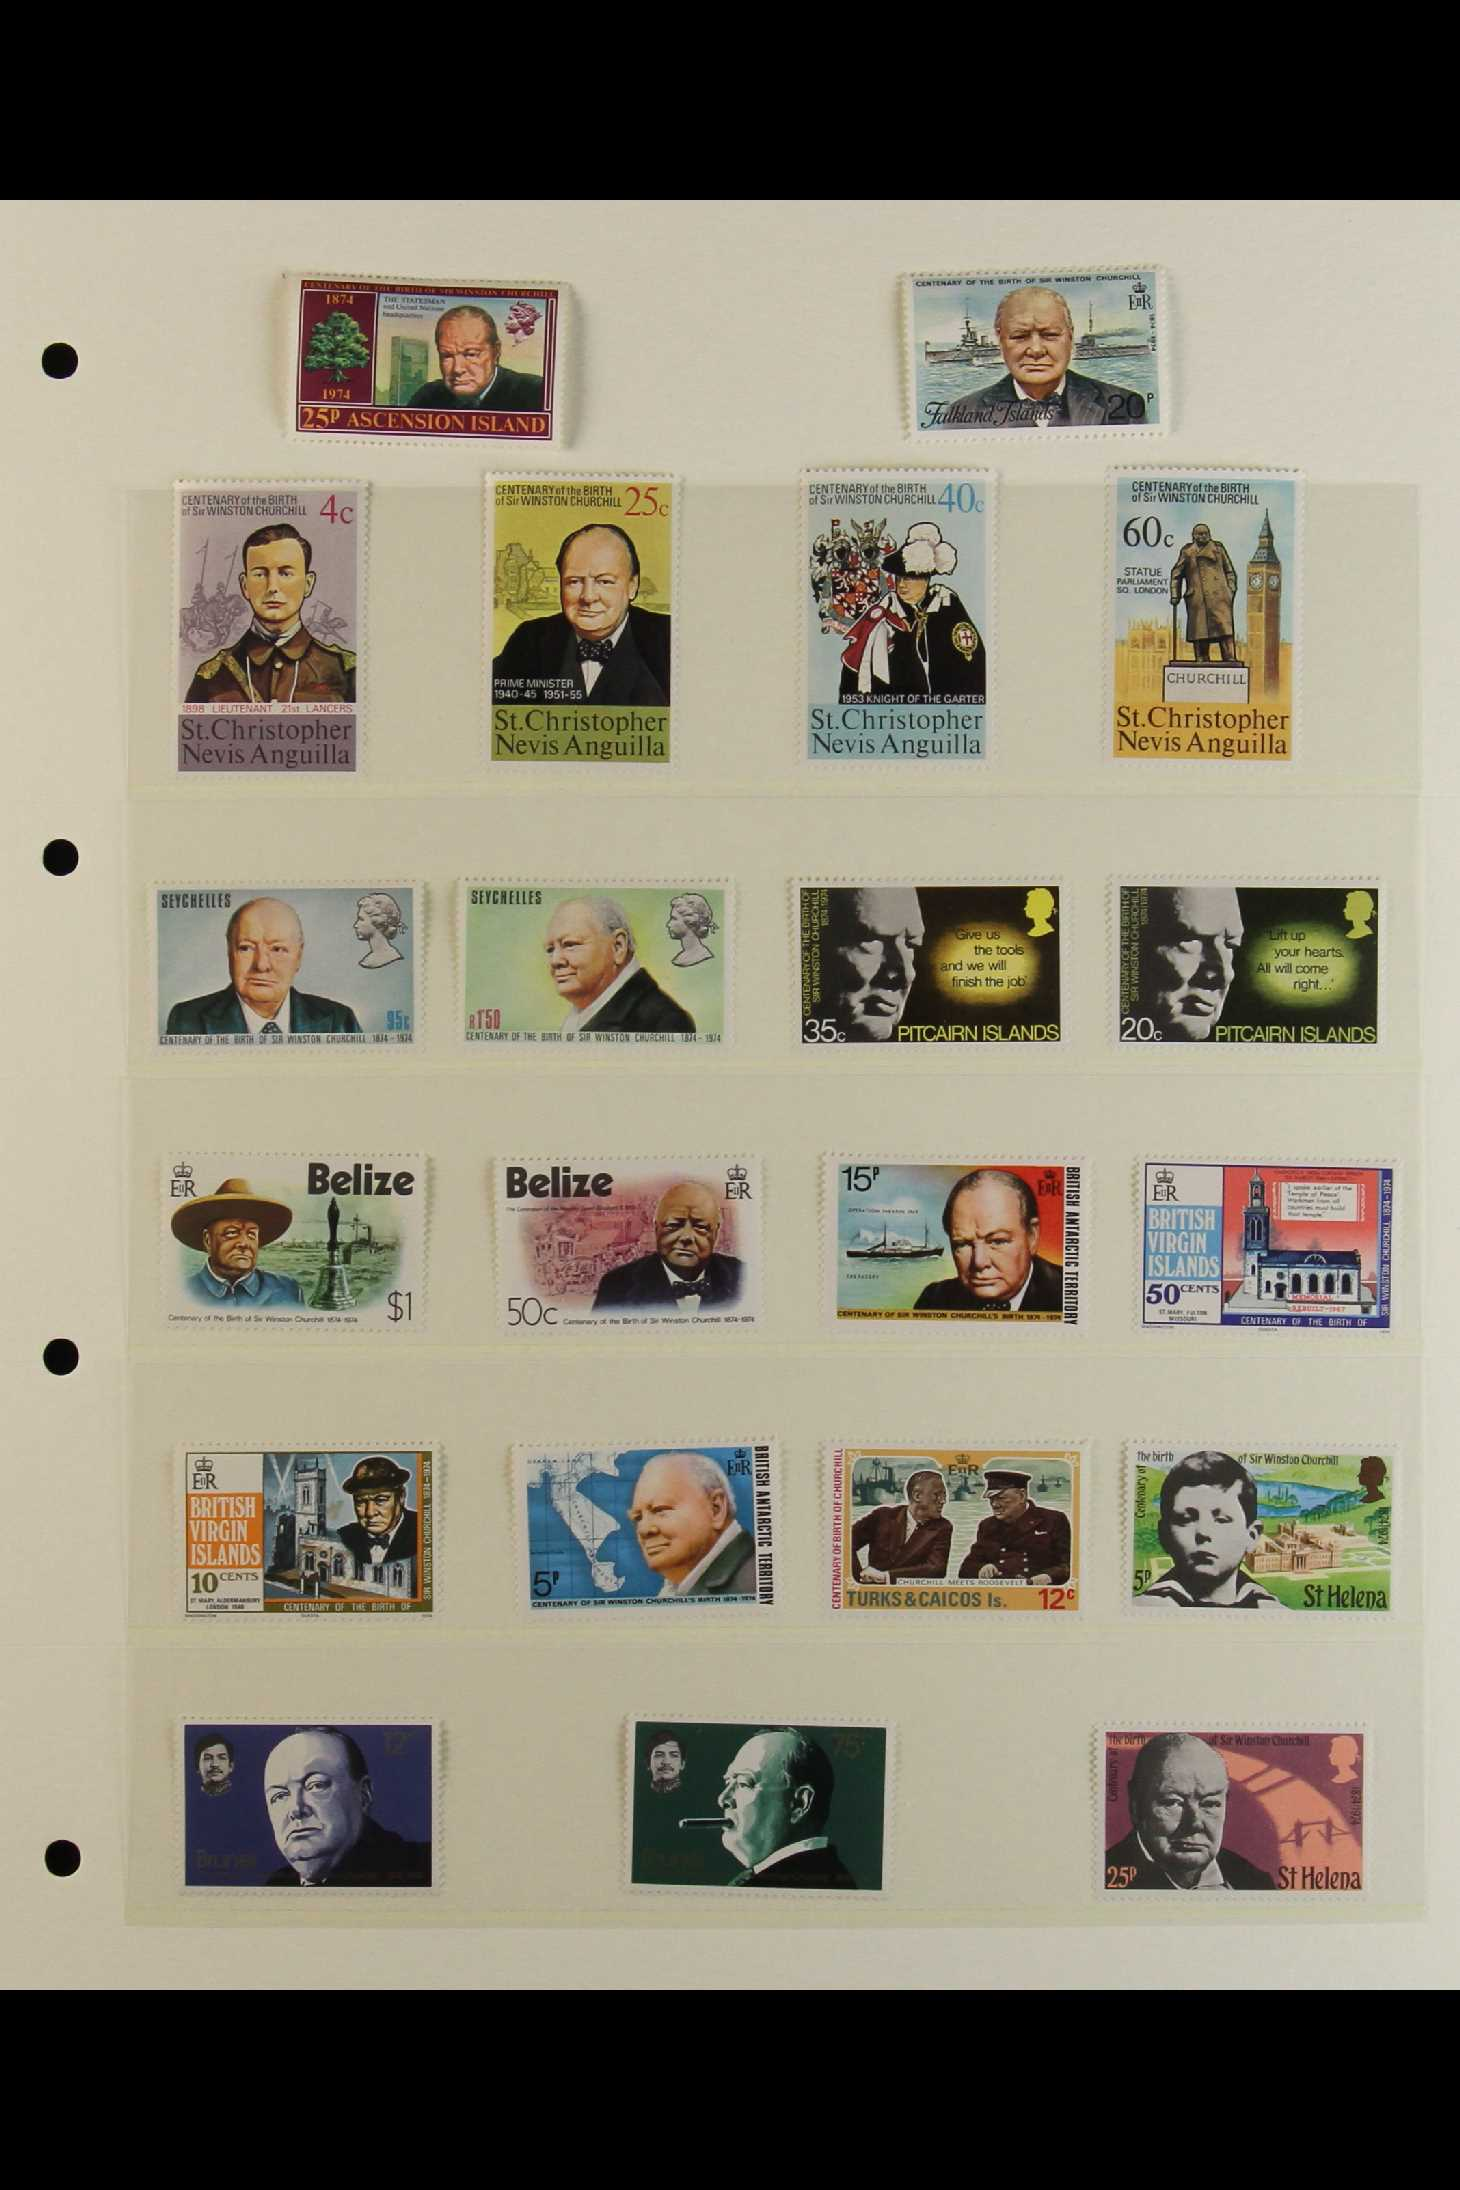 TOPICALS WINSTON CHURCHILL 1965-74 collection incl. 1965 sets on illustrated unaddressed FDC's incl. - Image 3 of 9